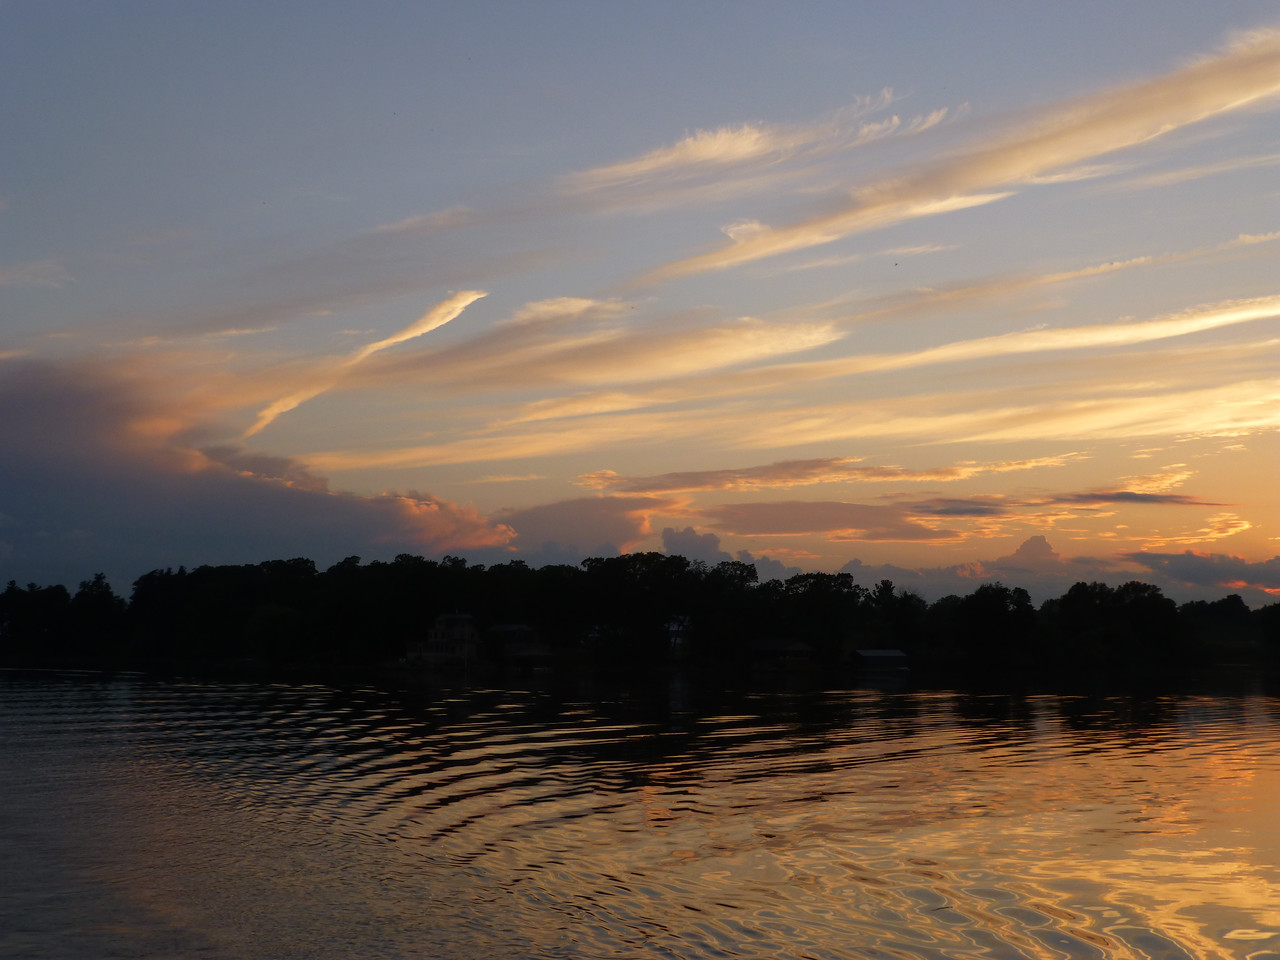 4.Sunset in 1000 Islands aboard The Canadian Empress 6/13/13